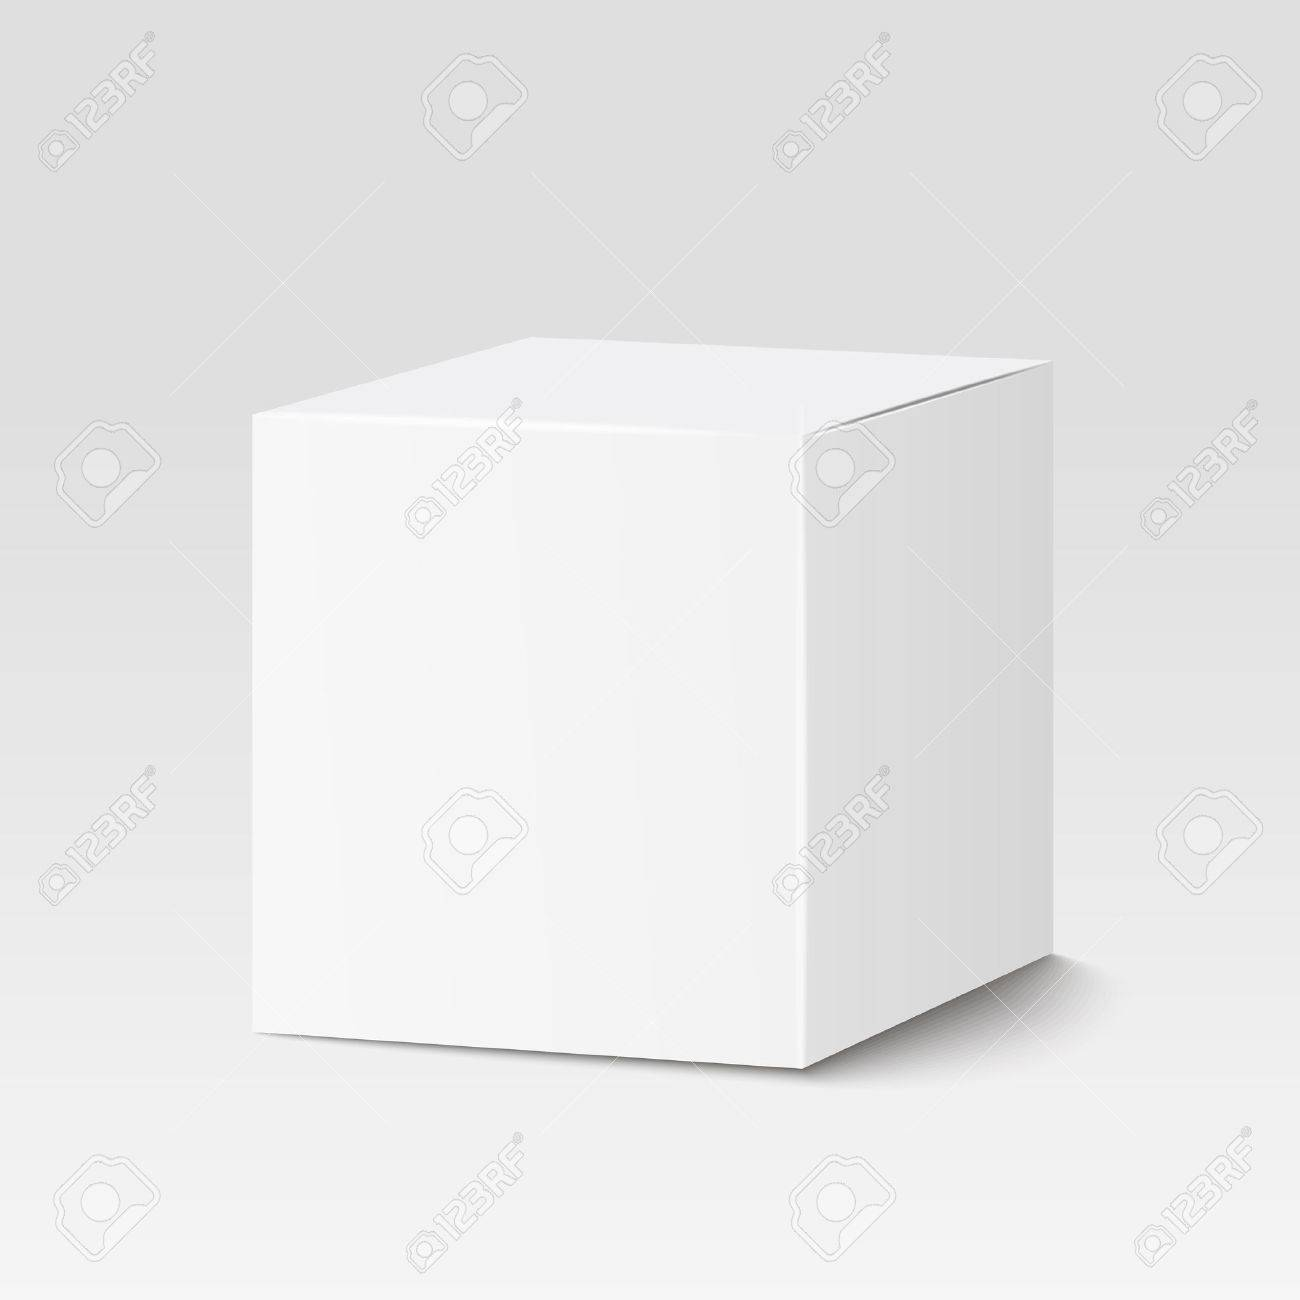 White square box, container packaging. - 51689210